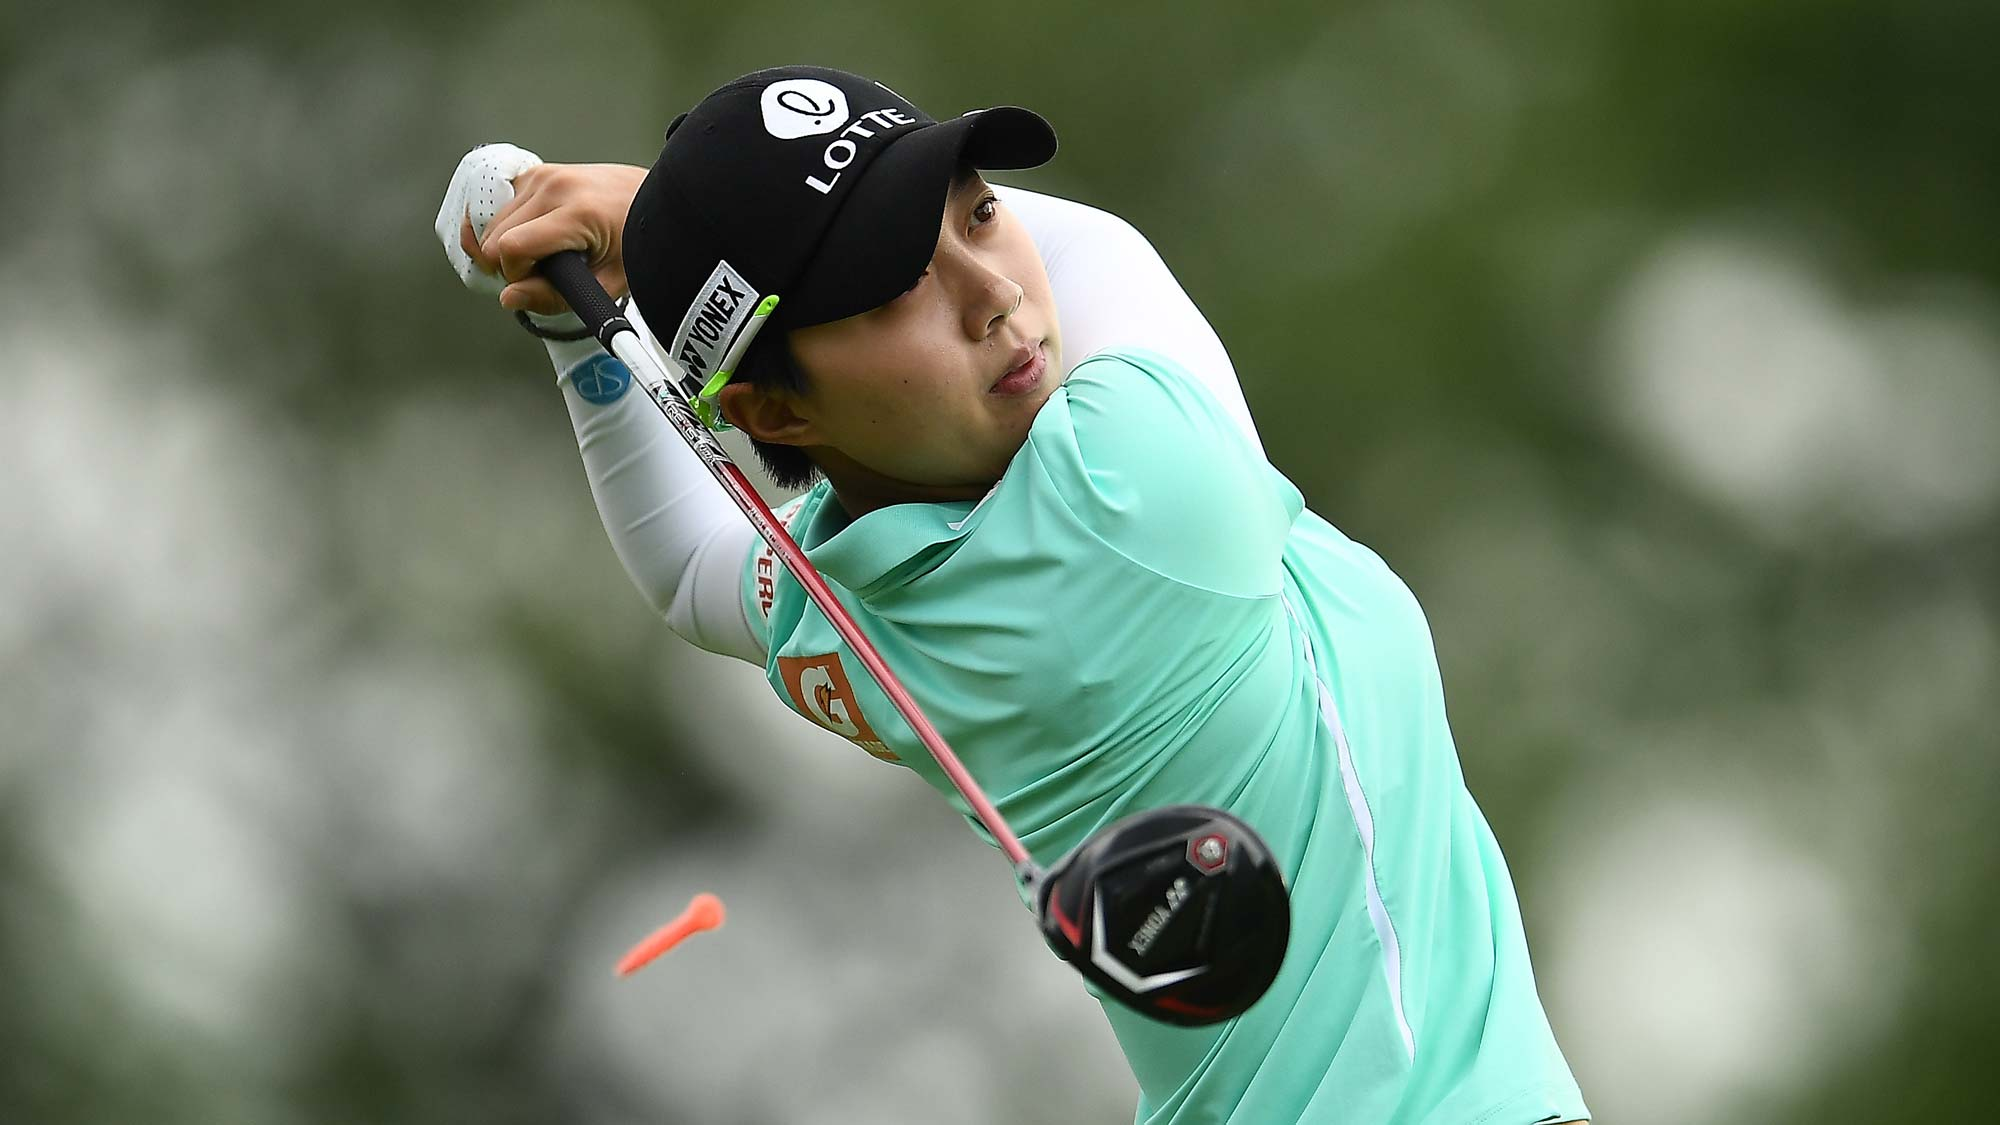 Hyo Joo Kim of Korea hits her tee shot on the third hole during the first round of the KPMG PGA Championship